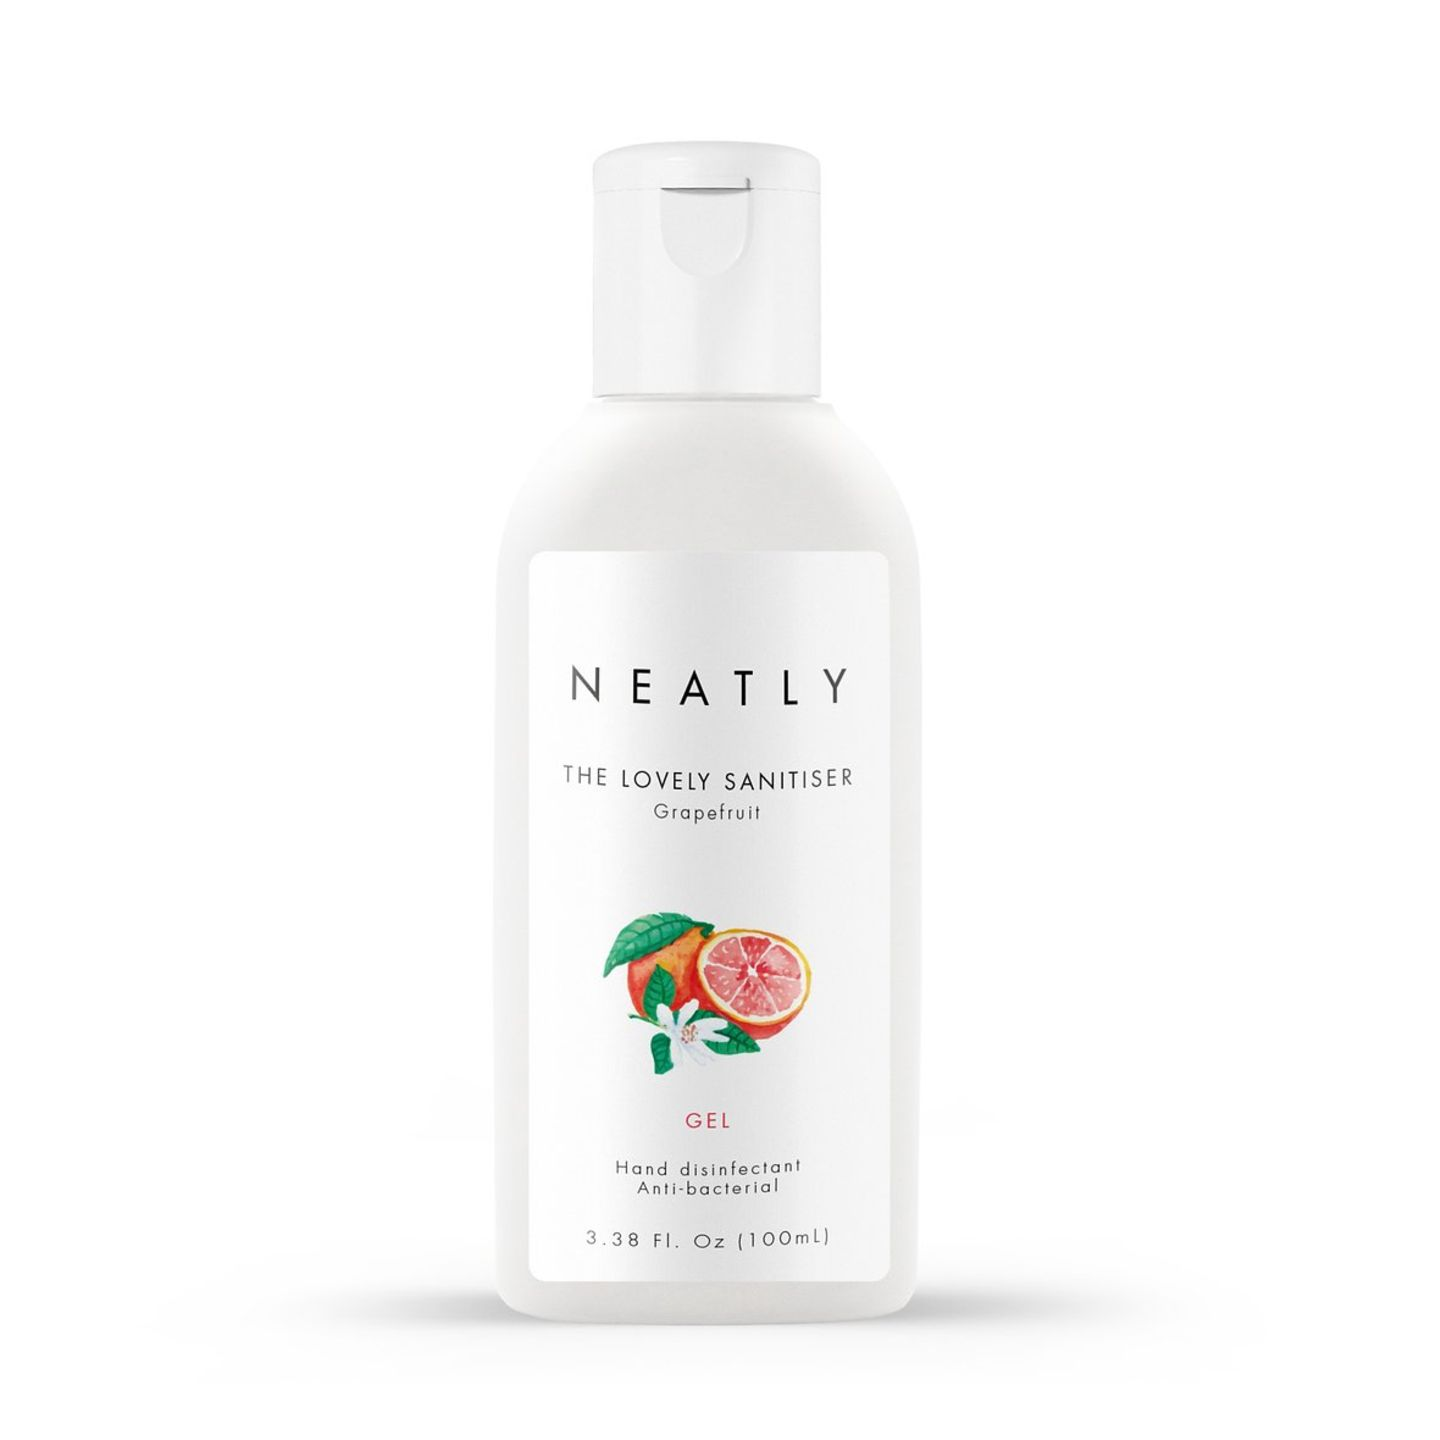 NEATLY Grapefruit hand sanitiser gel